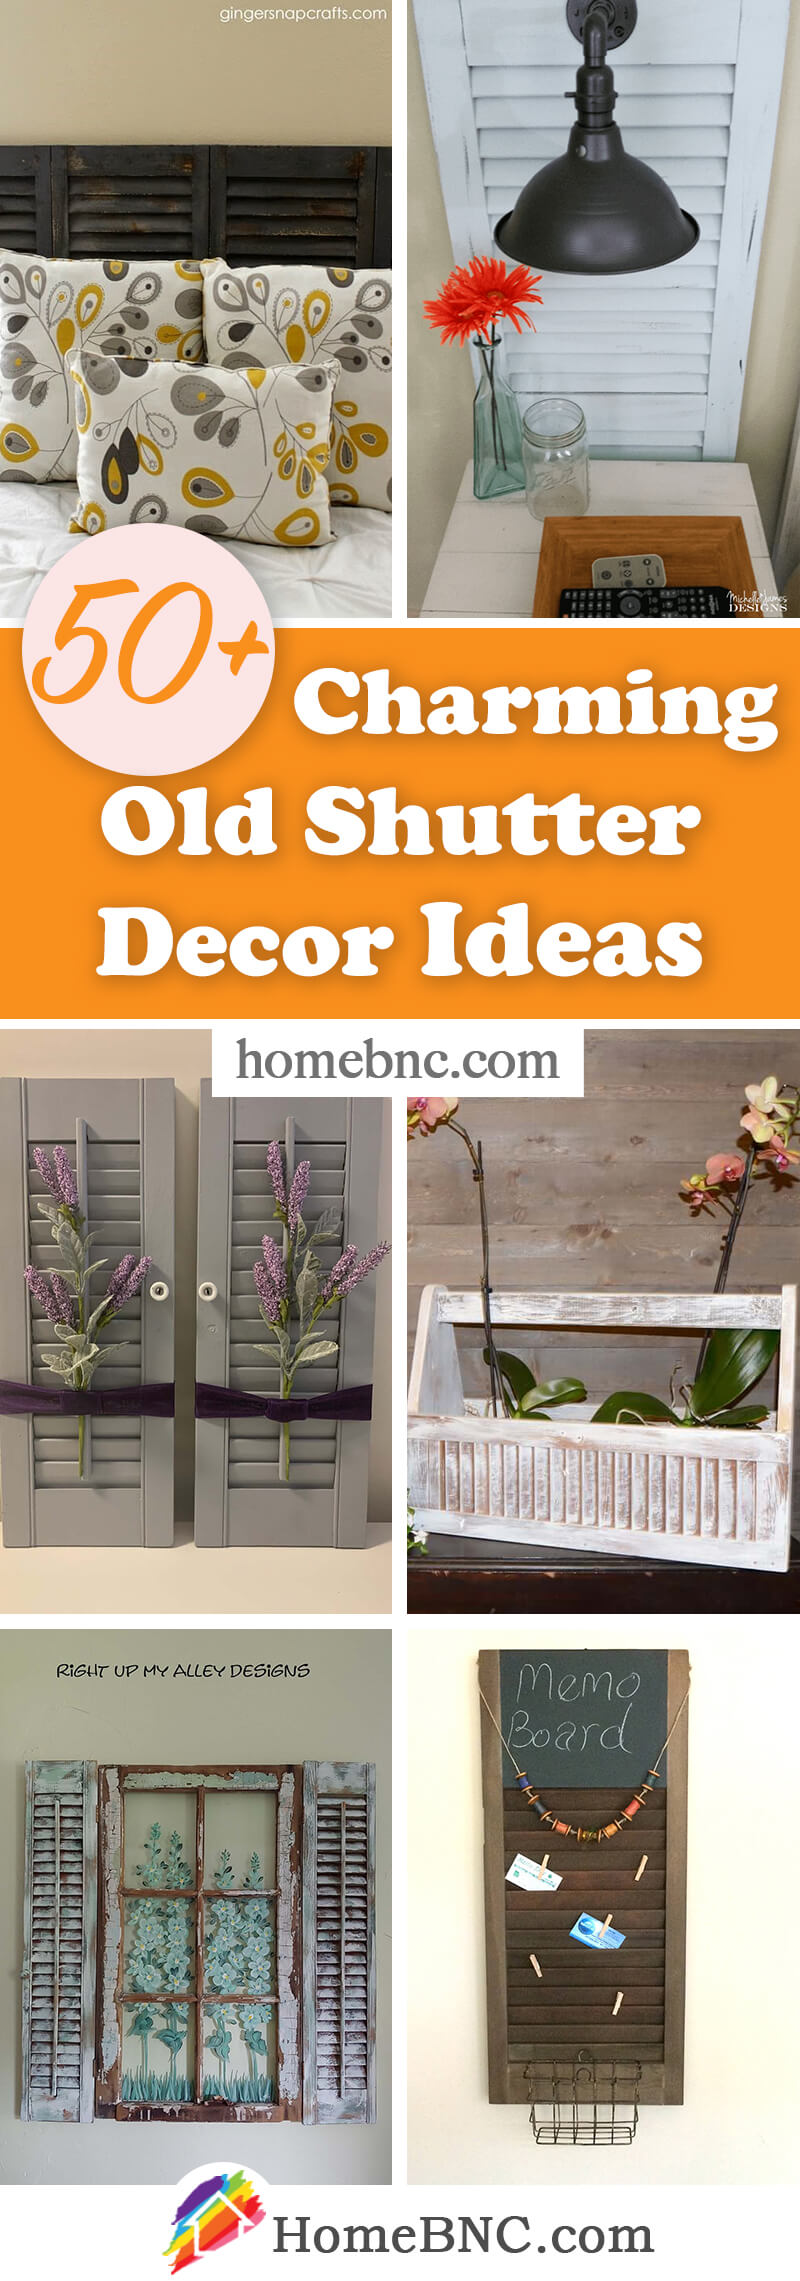 Old Shutter Decoration and Design Ideas